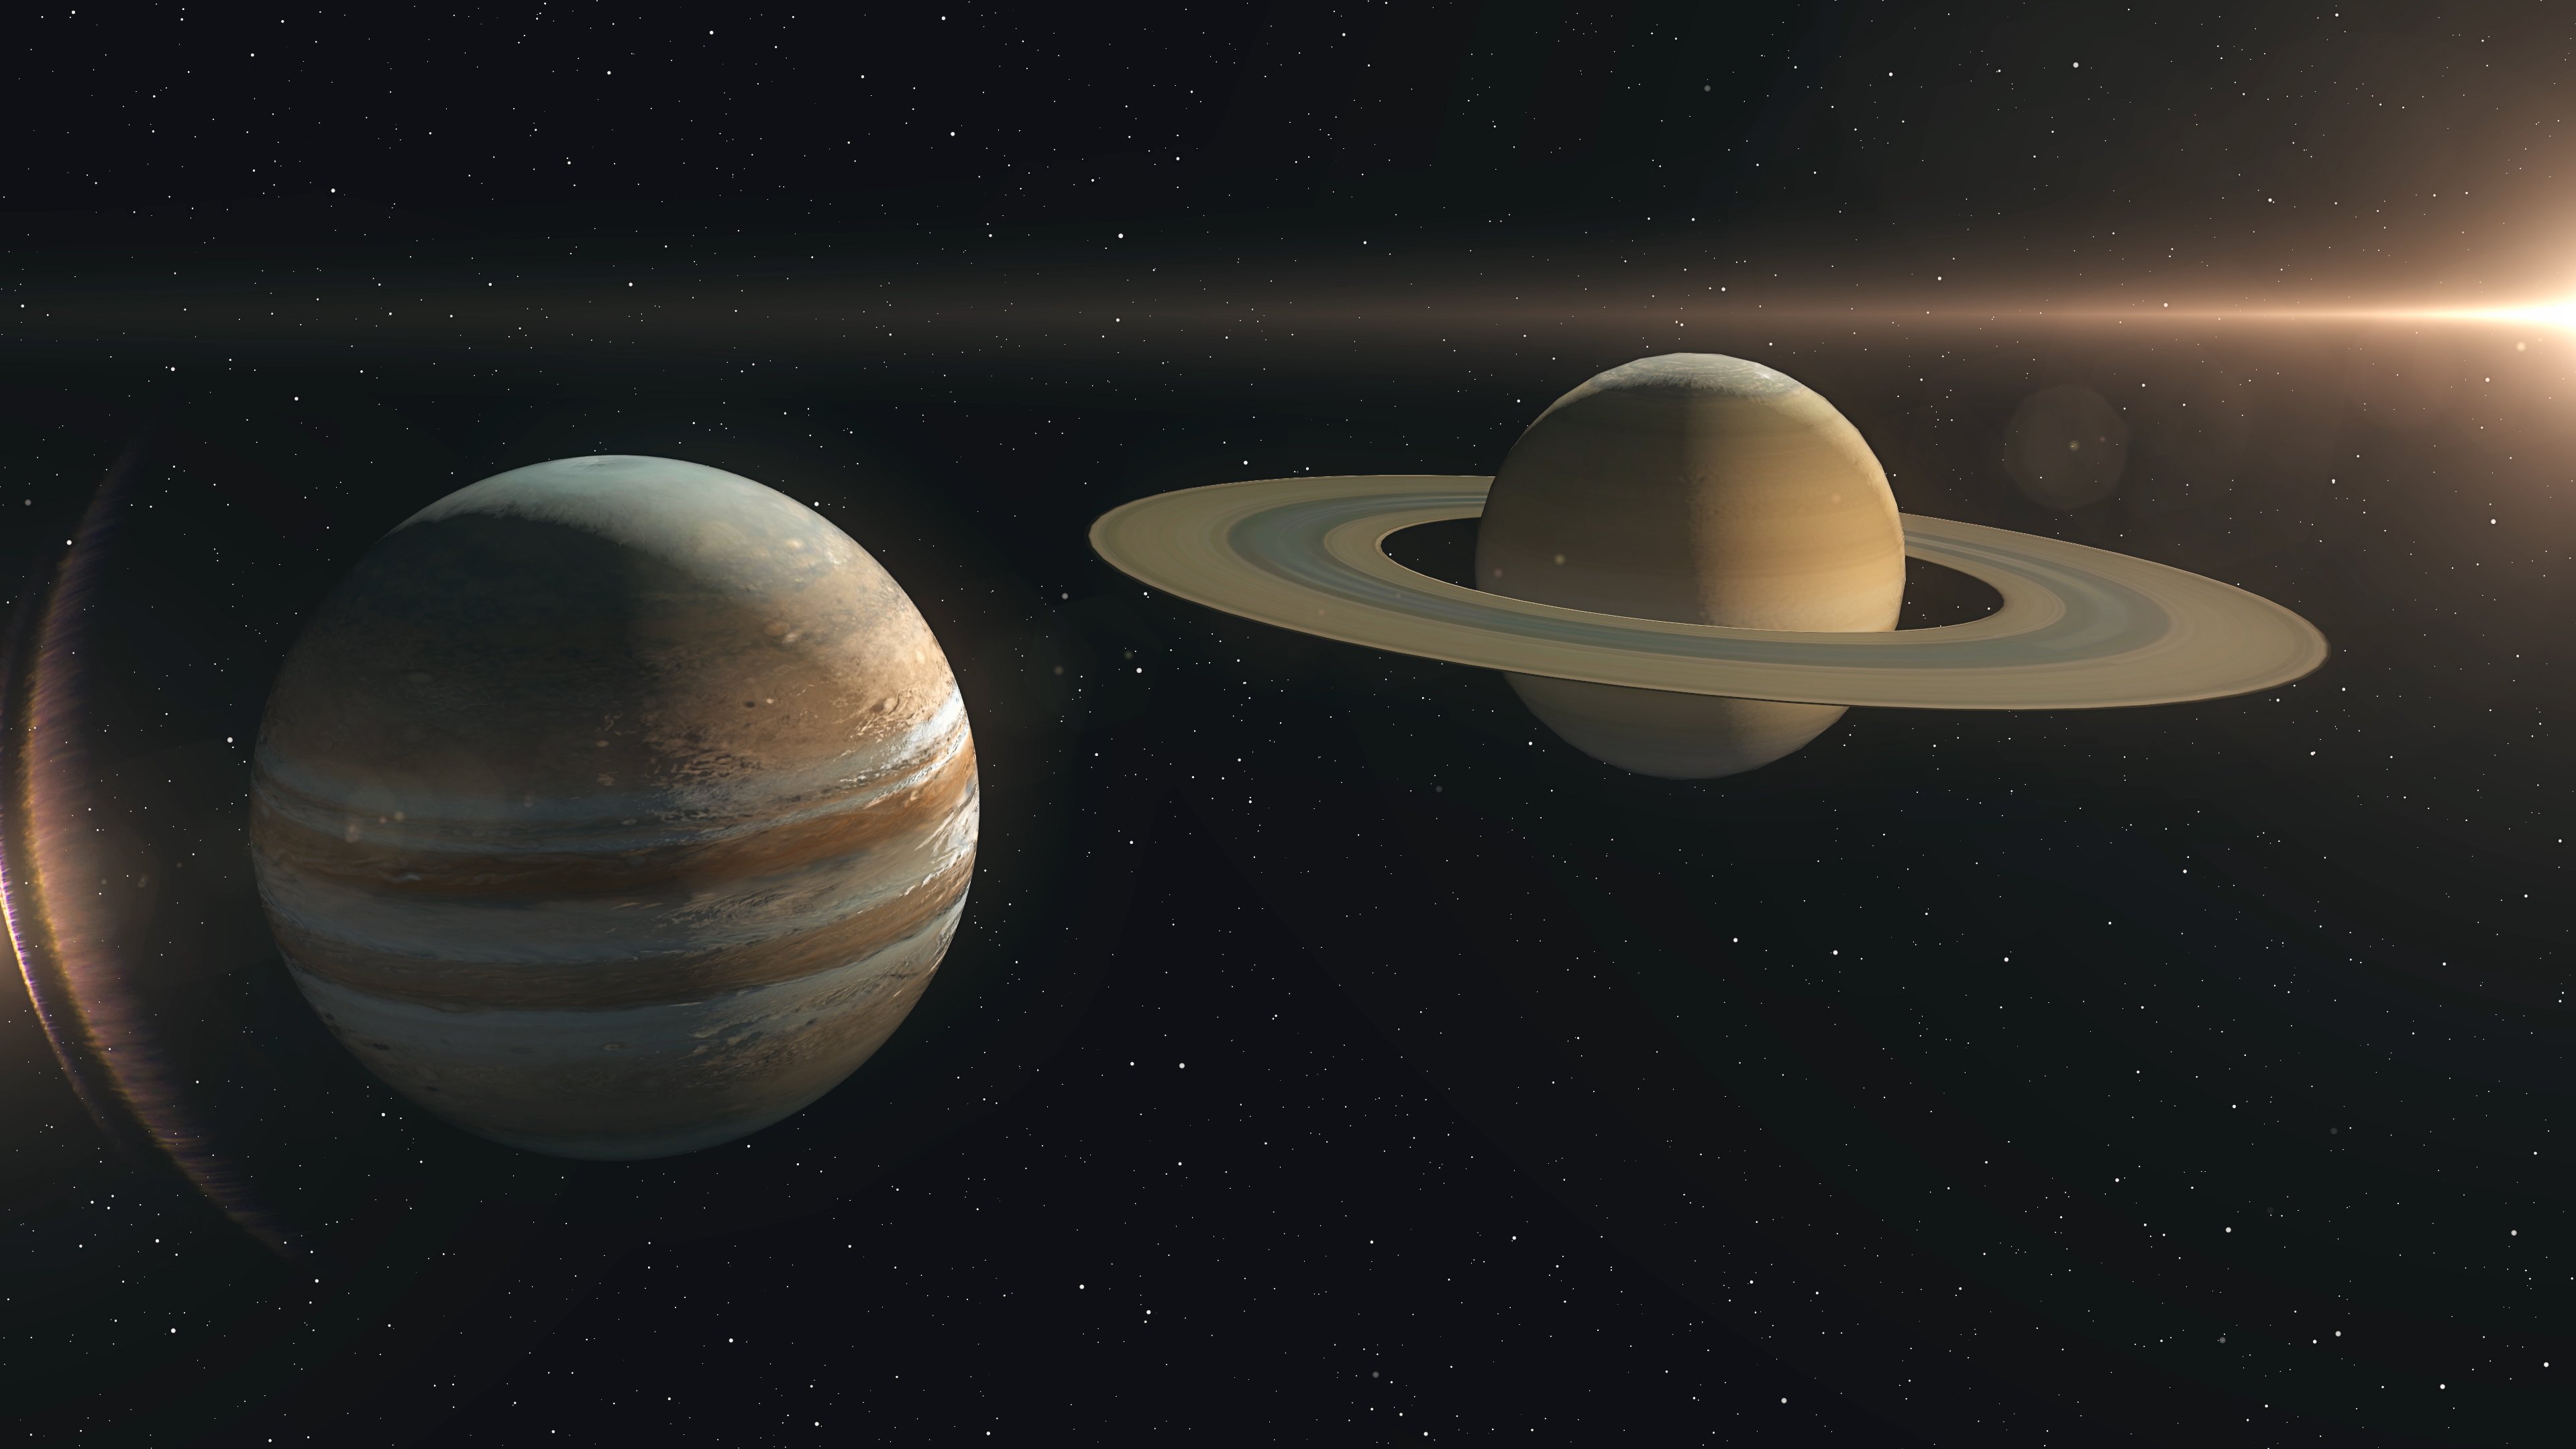 Saturn and Jupiter are exceptionally close to each other. 3D scene created and modelled in Adobe After Effects and the planet textures are taken from Solar System Scope official website (https://www.solarsystemscope.com/textures/)